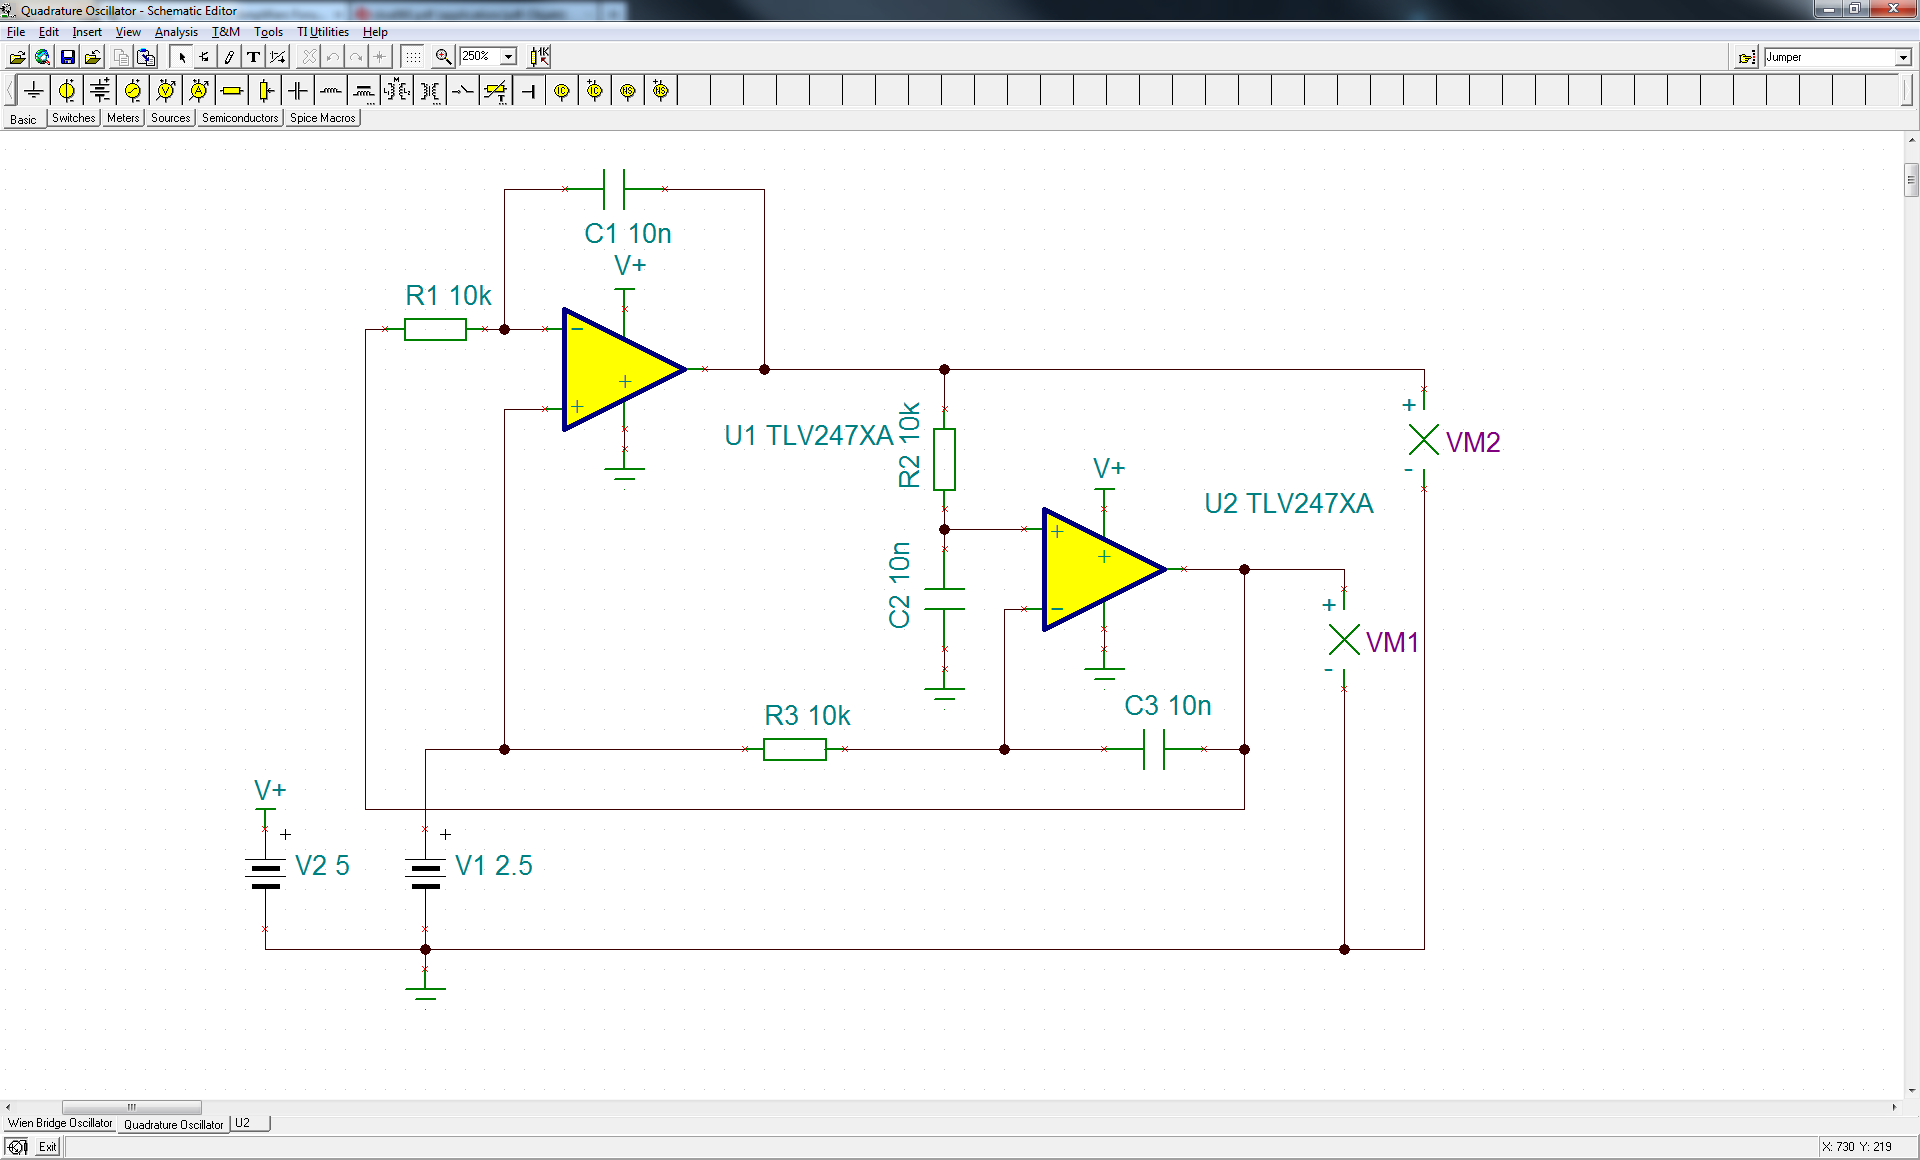 Resolved Quadrature Oscillator With Tlv2474 Amplifiers Forum Highspeed Amplifier Circuits Analog Wire Blogs Ti E2e Community And These Are The Results Of A Transient Simulation